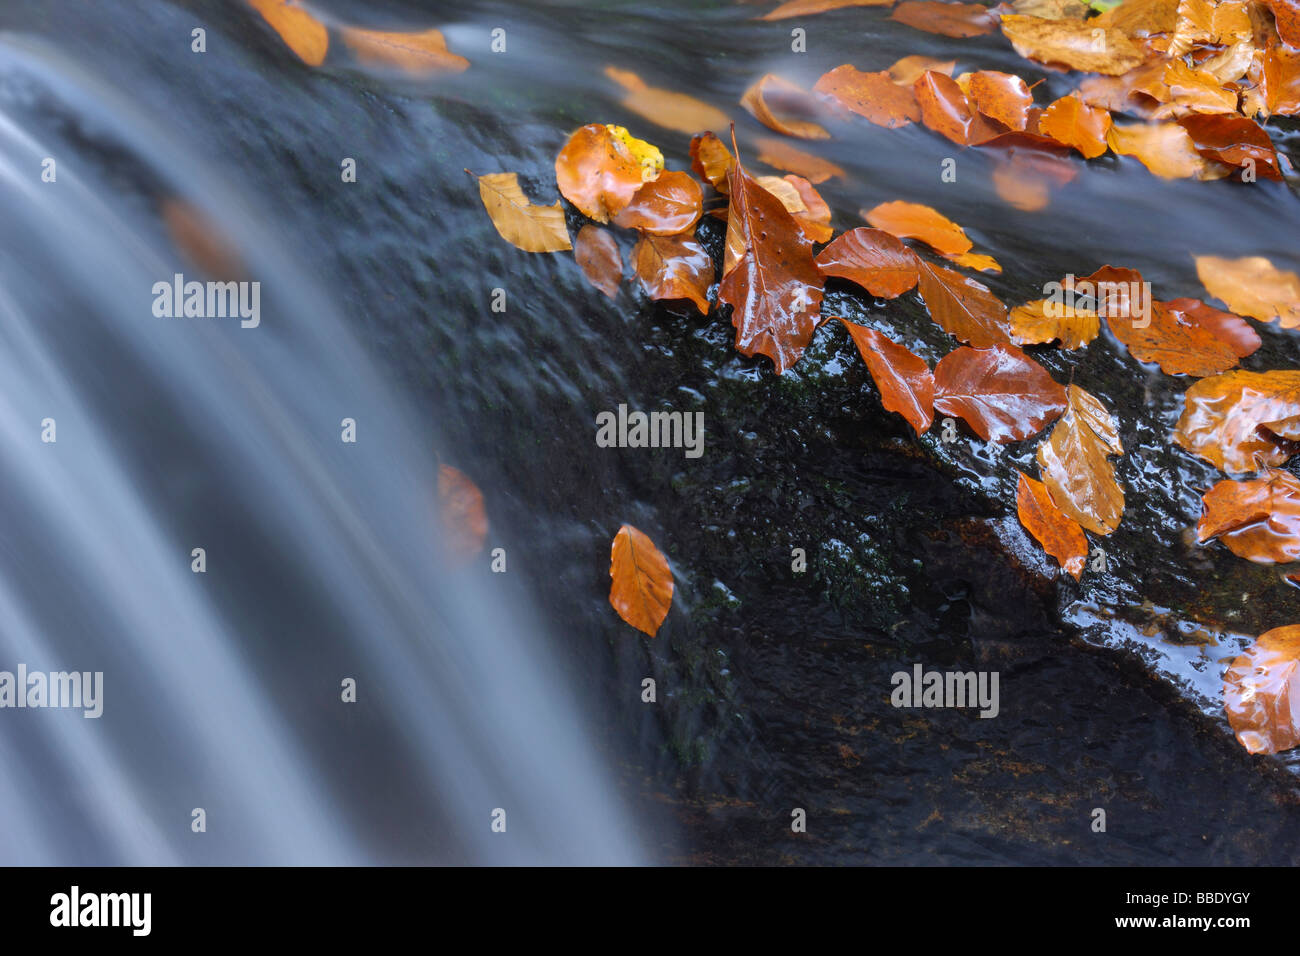 Close-Up of Autumn Leaves on Rock in Flowing Stream, Bavarian Forest National Park, Bavaria, Germany Stock Photo